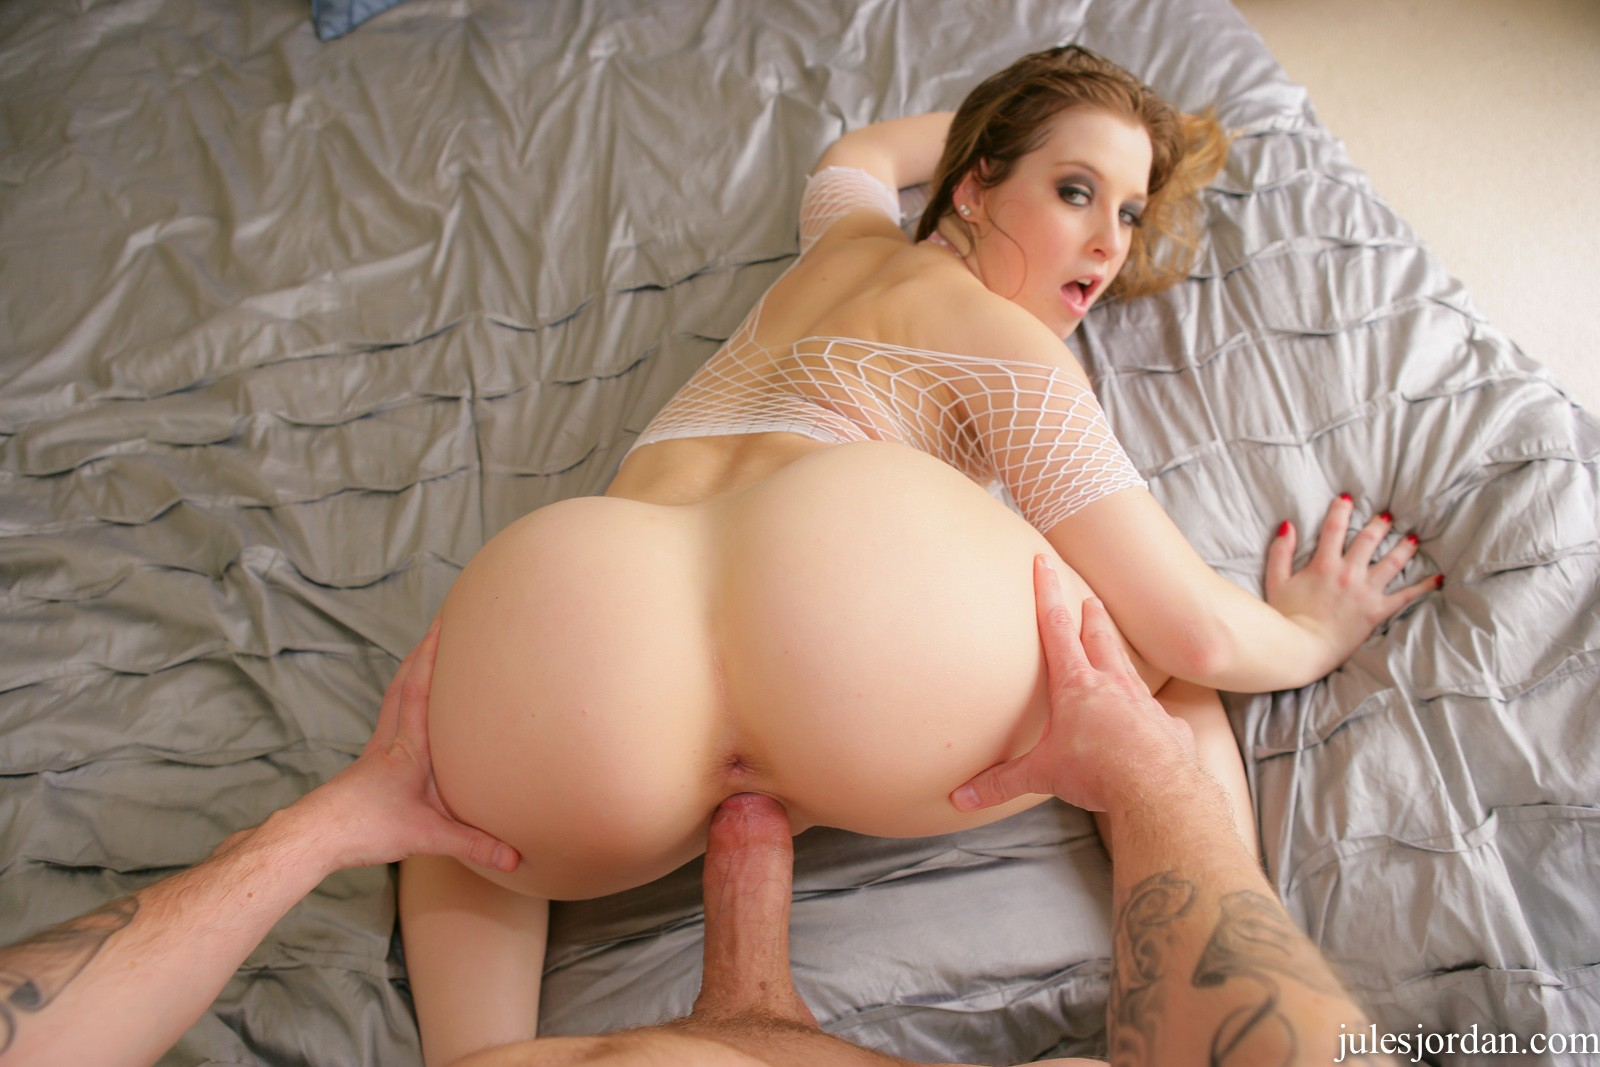 Horny sunny lane gets frisky in the back seat 4